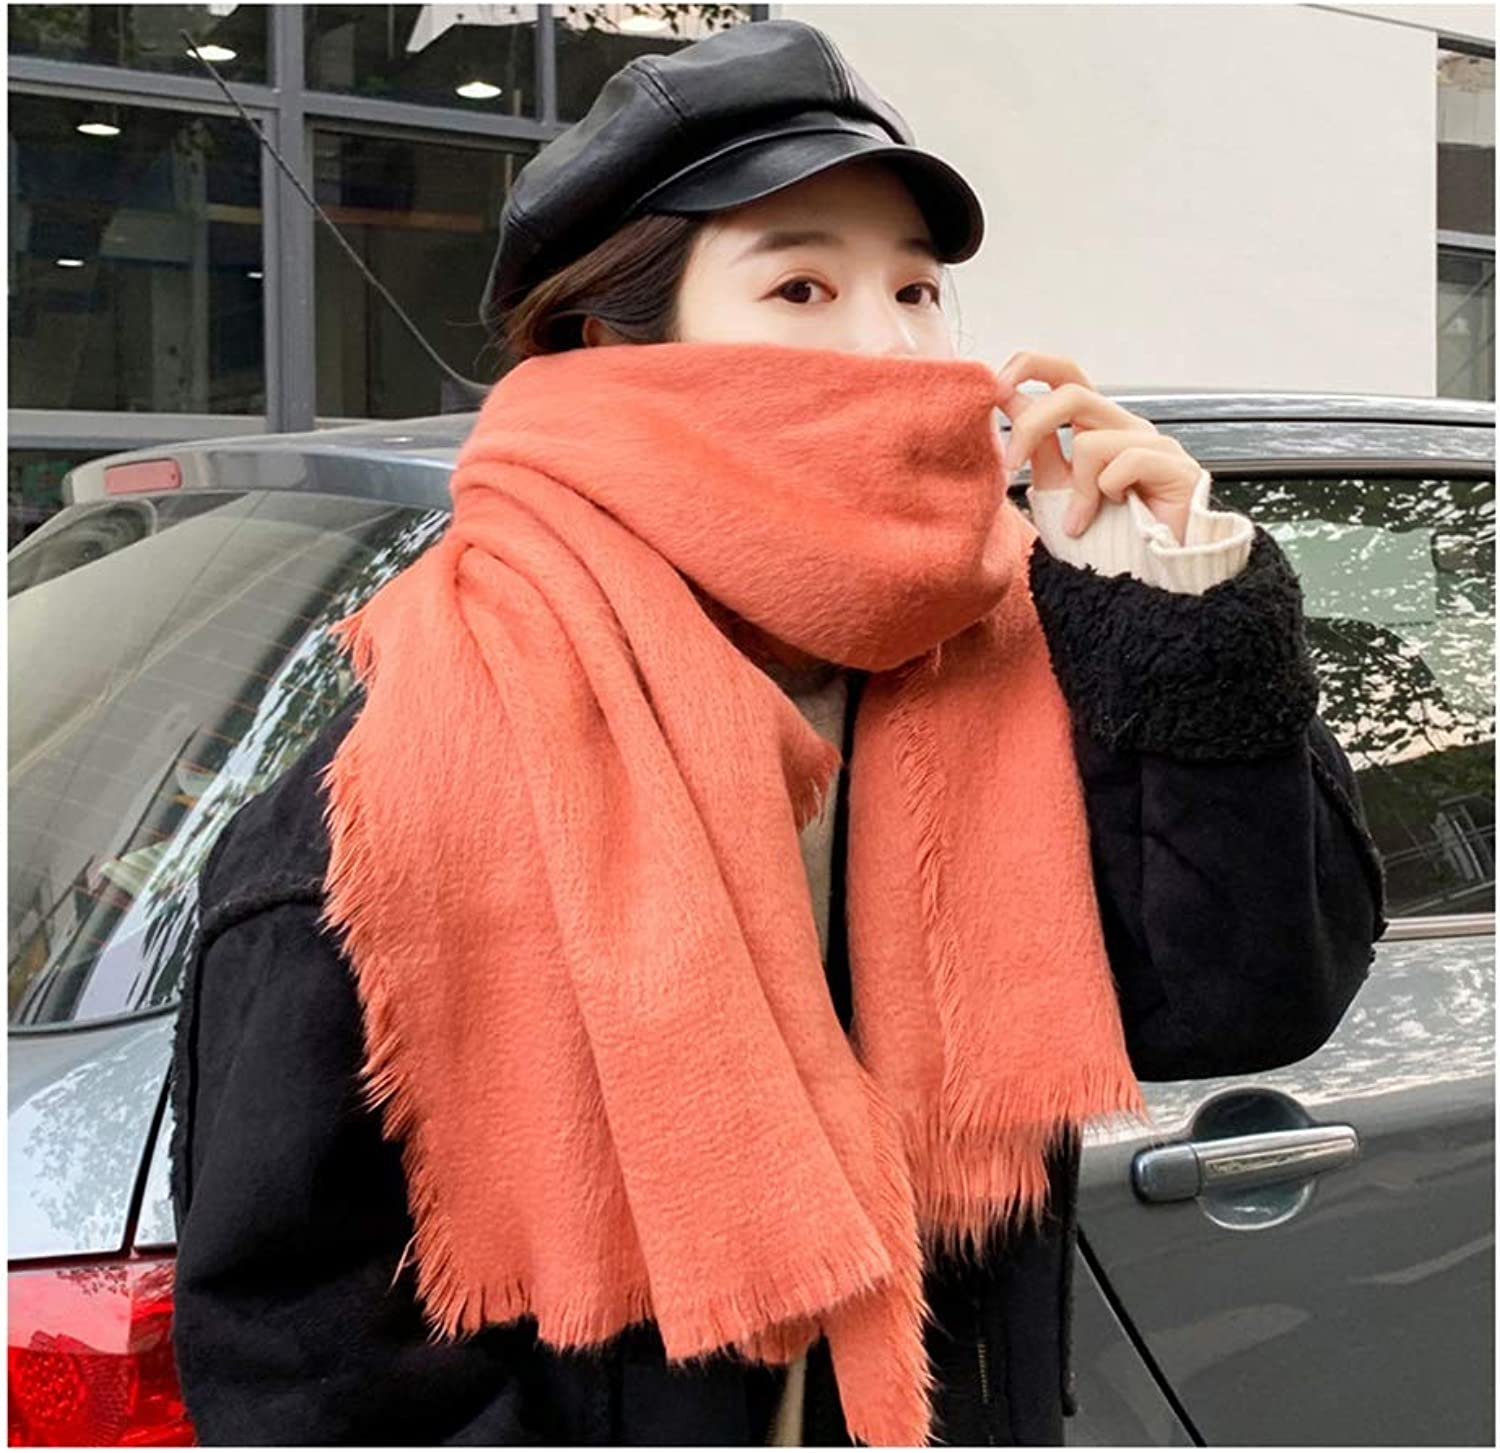 Scarf Warm Soft Hair Warm Scarf Sexy Winter Warm Scarf Fashion Long Scarf Shawl (color   C)